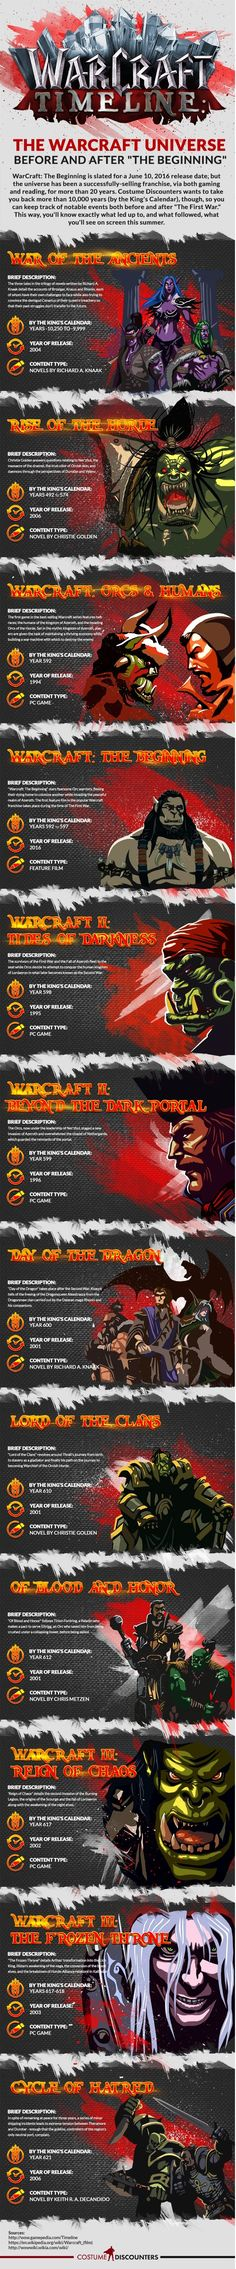 Get acquainted with WarCraft by taking a look at this timeline!